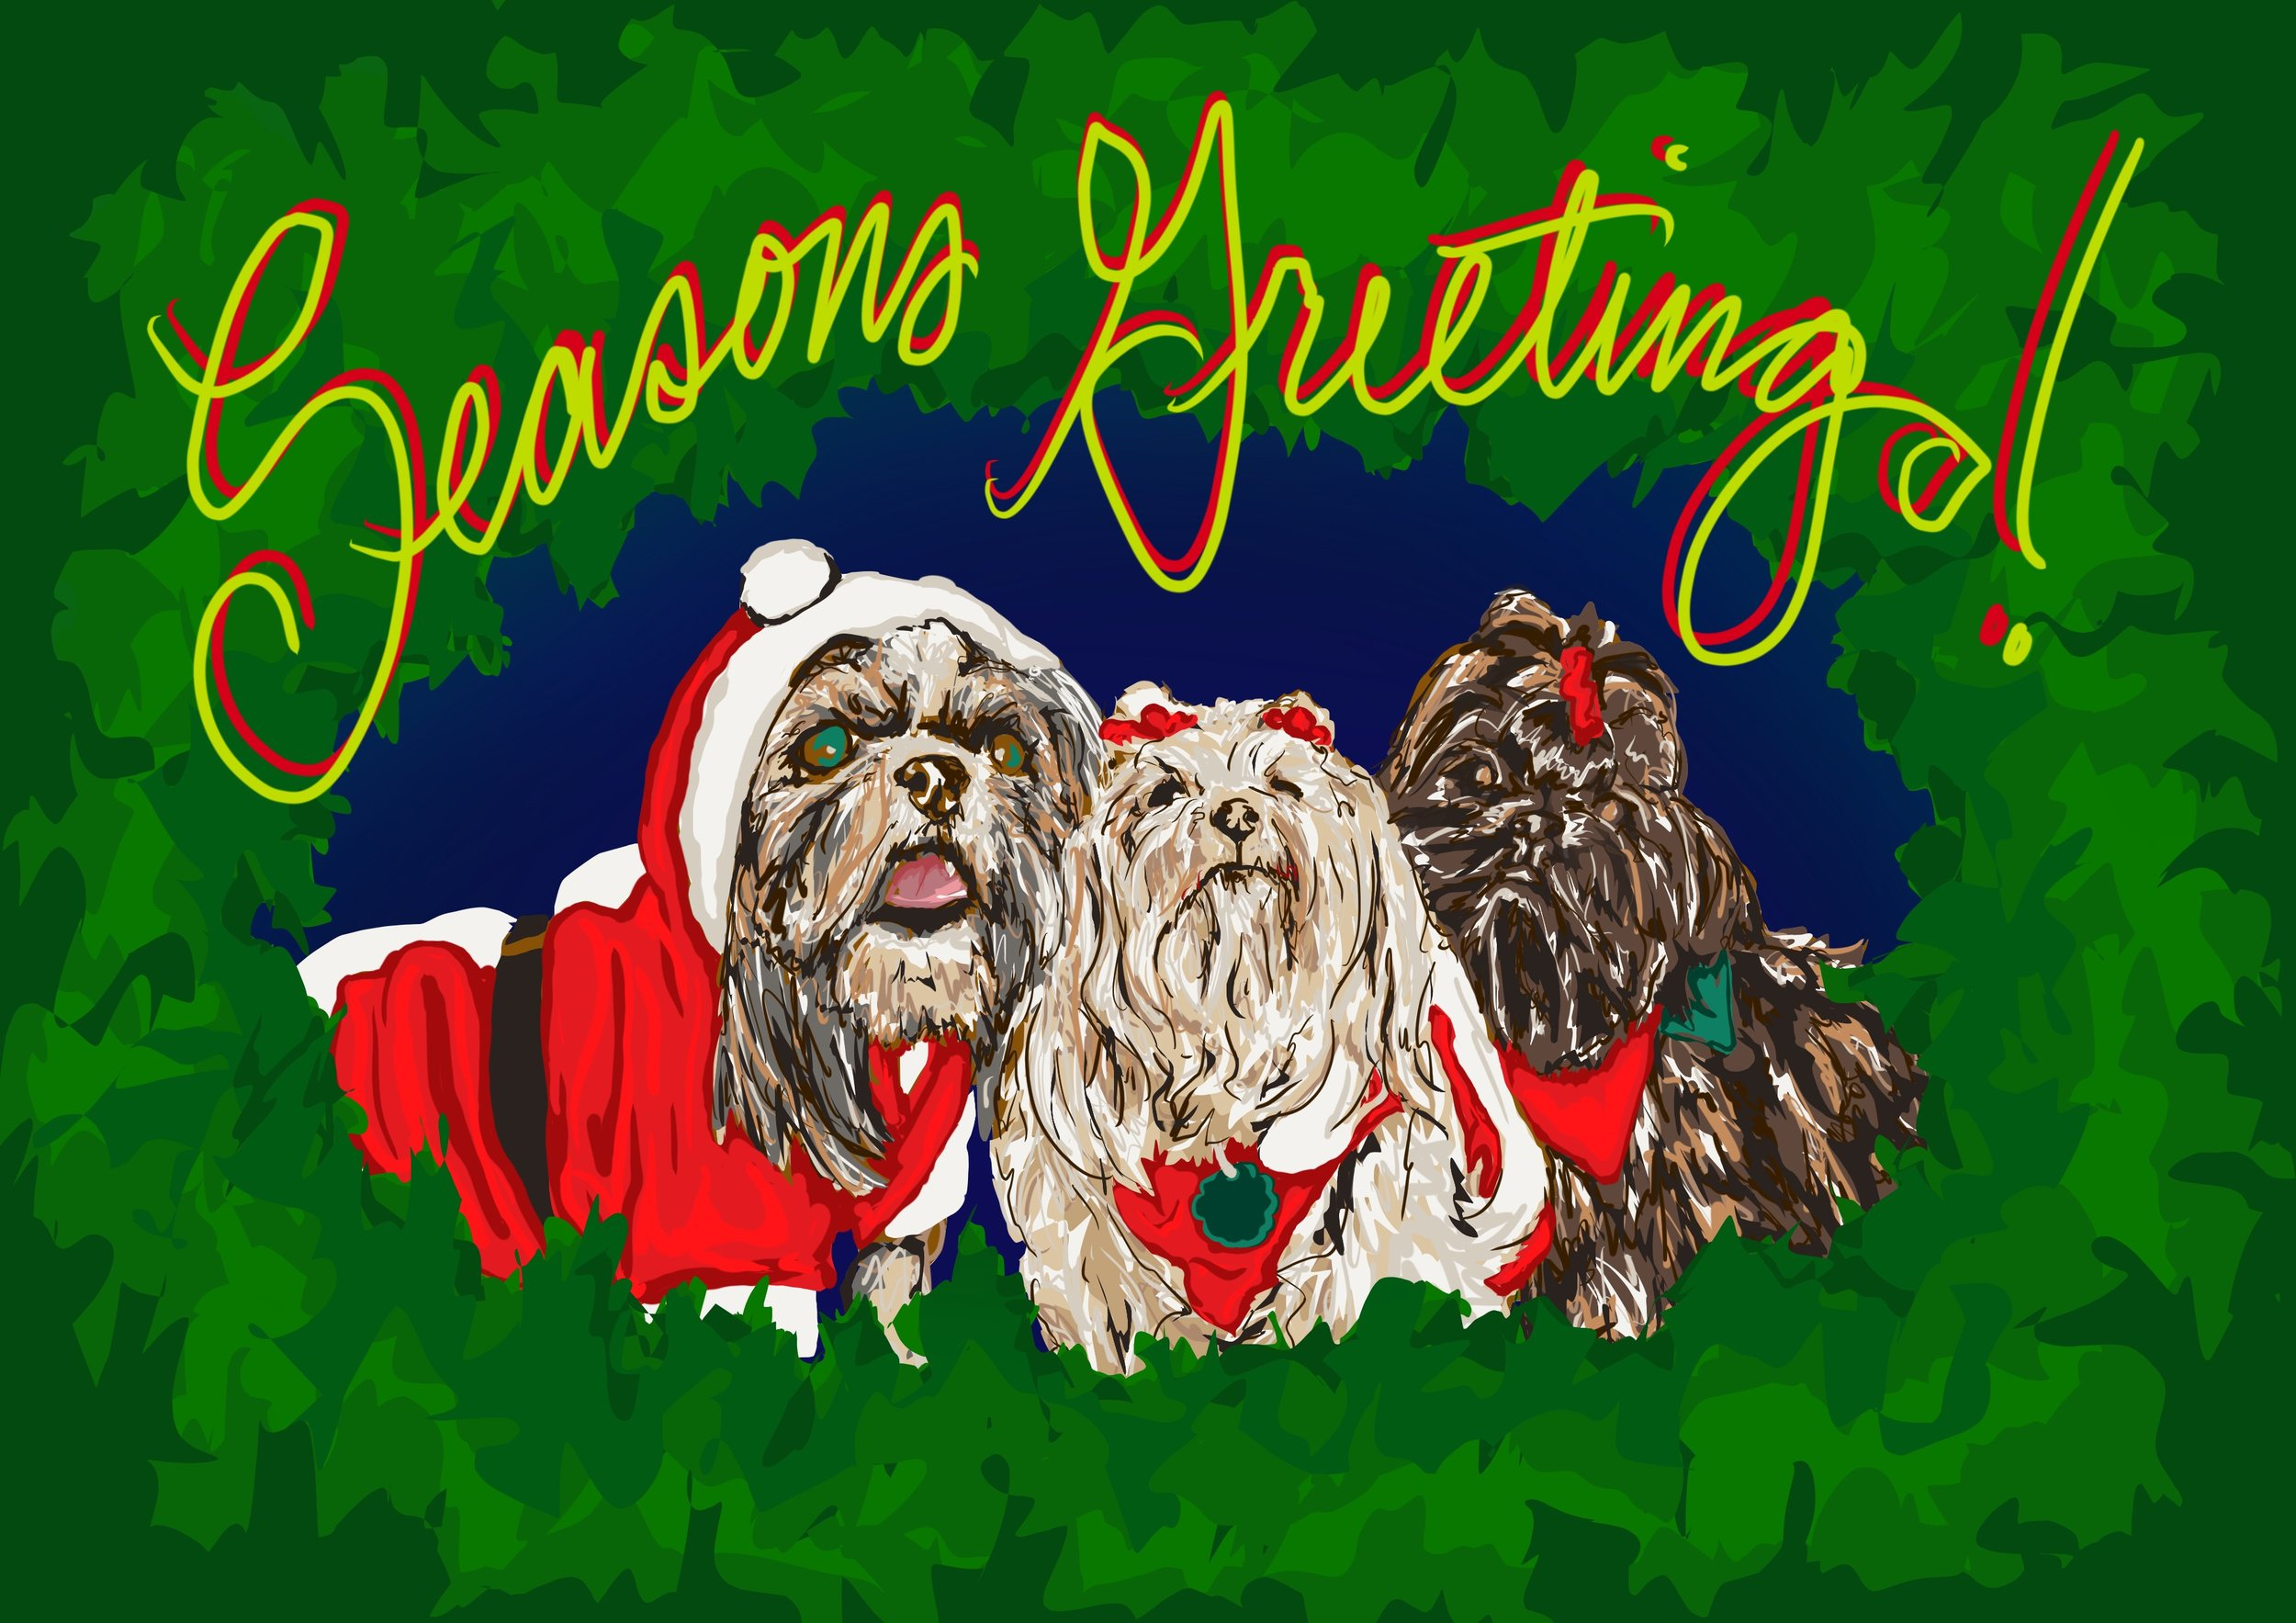 Seasons_greetings_dogs_edit.jpg